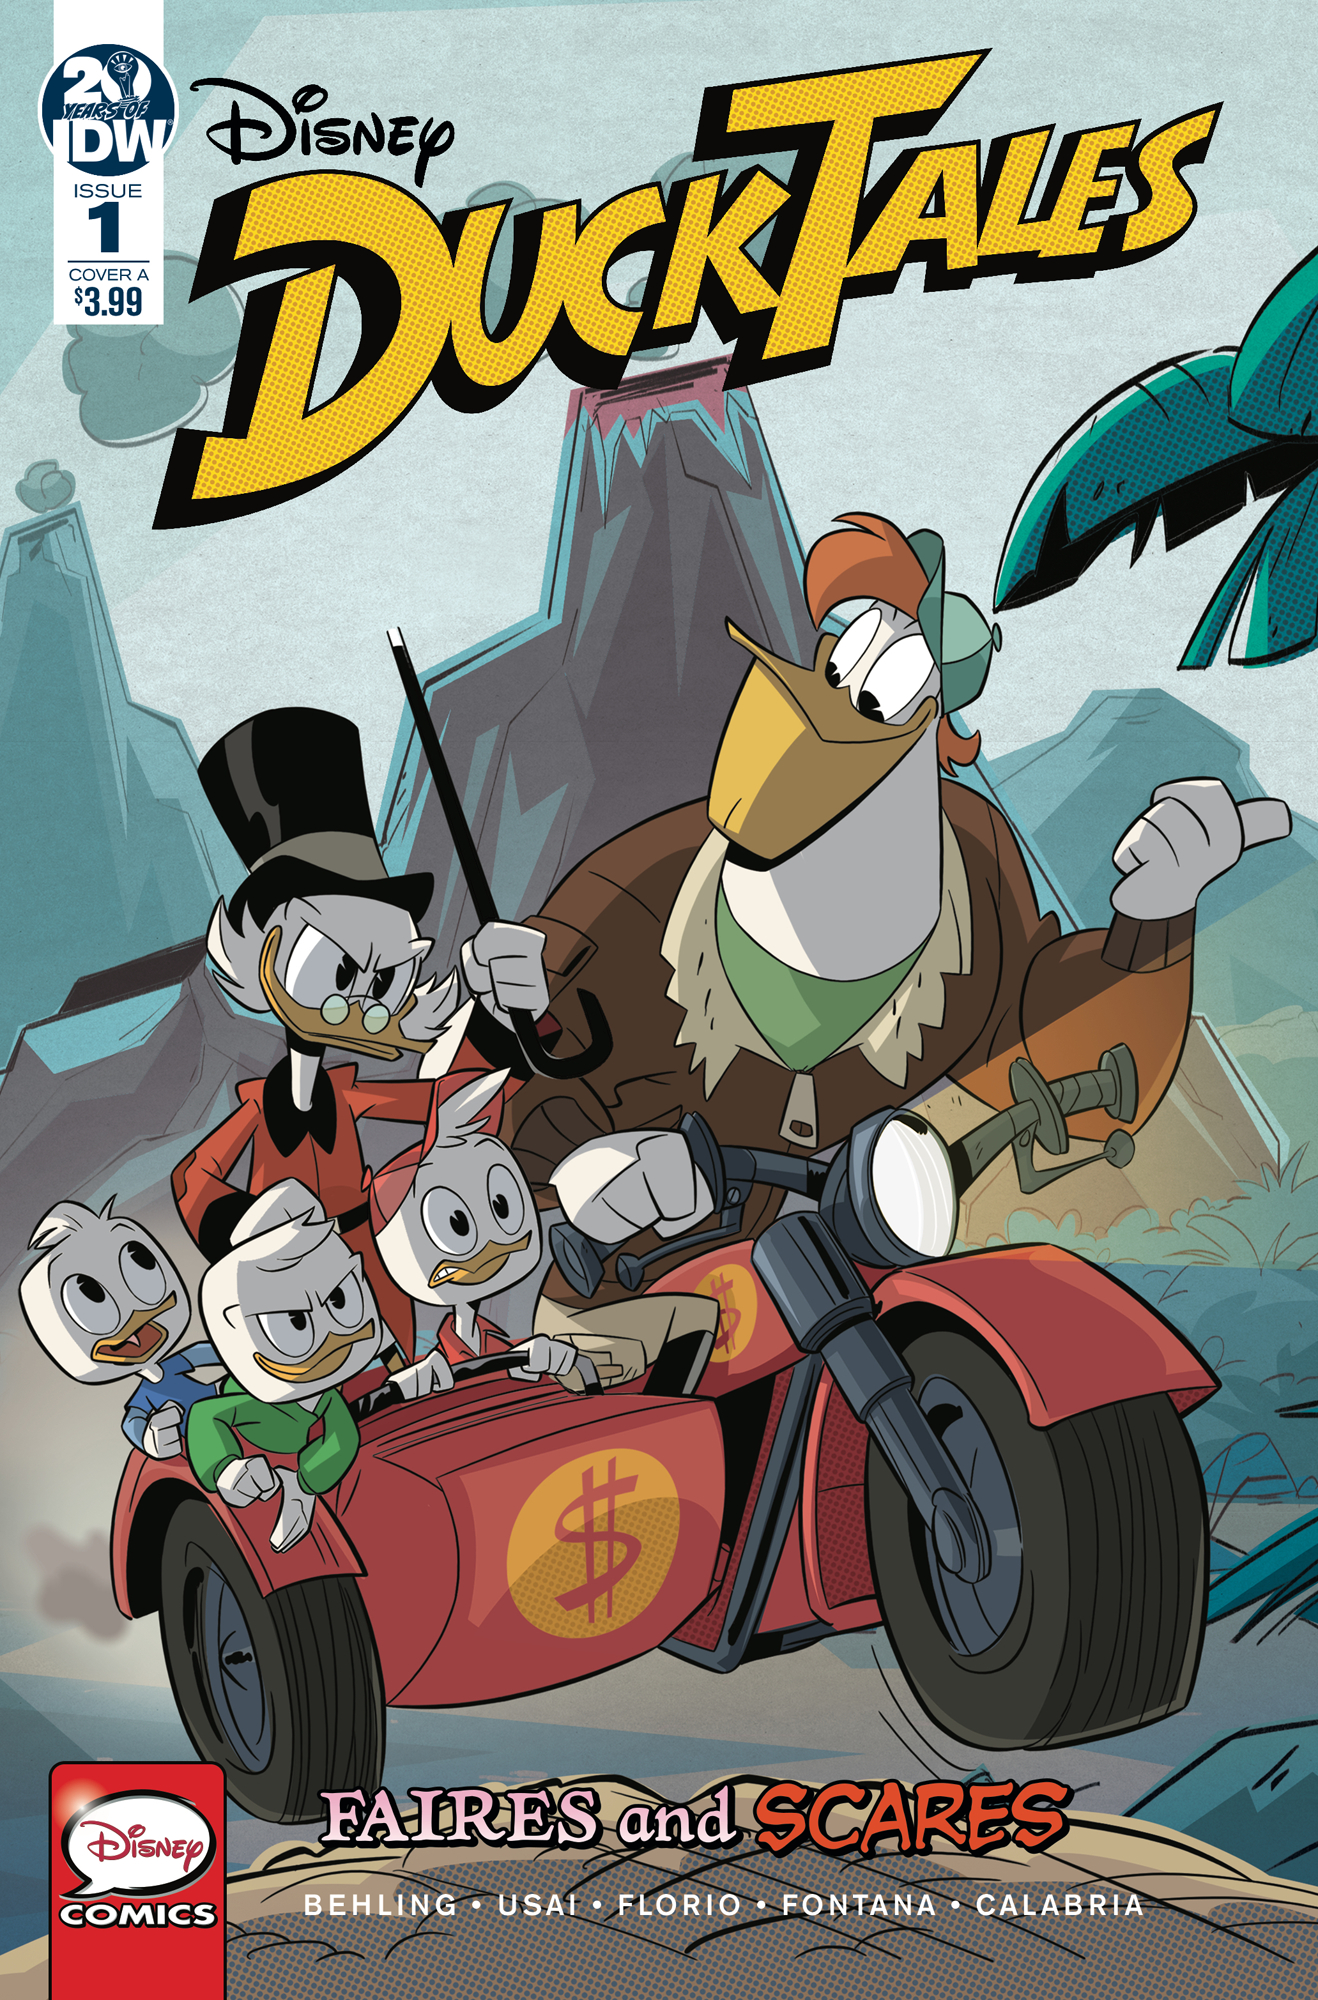 DUCKTALES FAIRES & SCARES #1 (OF 3) CVR A GHIGLIONE & STELLA